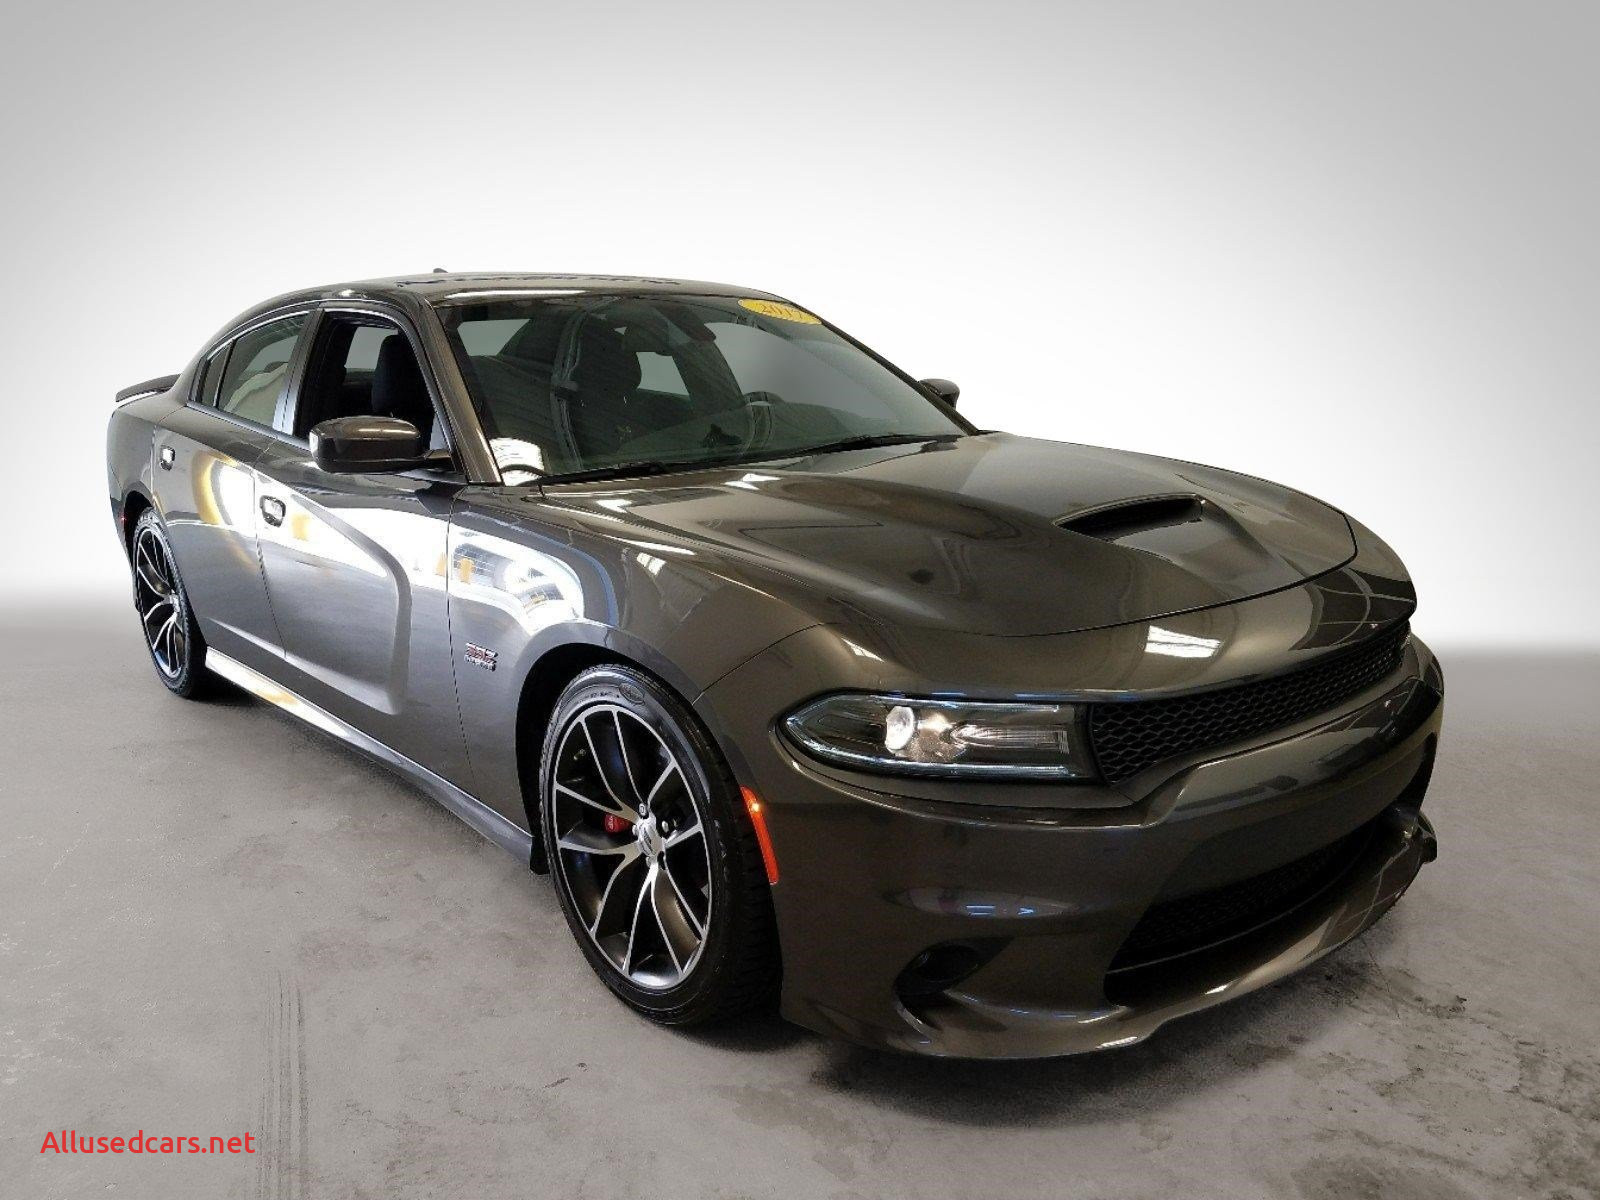 2018 Dodge Charger Rt Lovely Pre Owned 2017 Dodge Charger R T Scat Pack